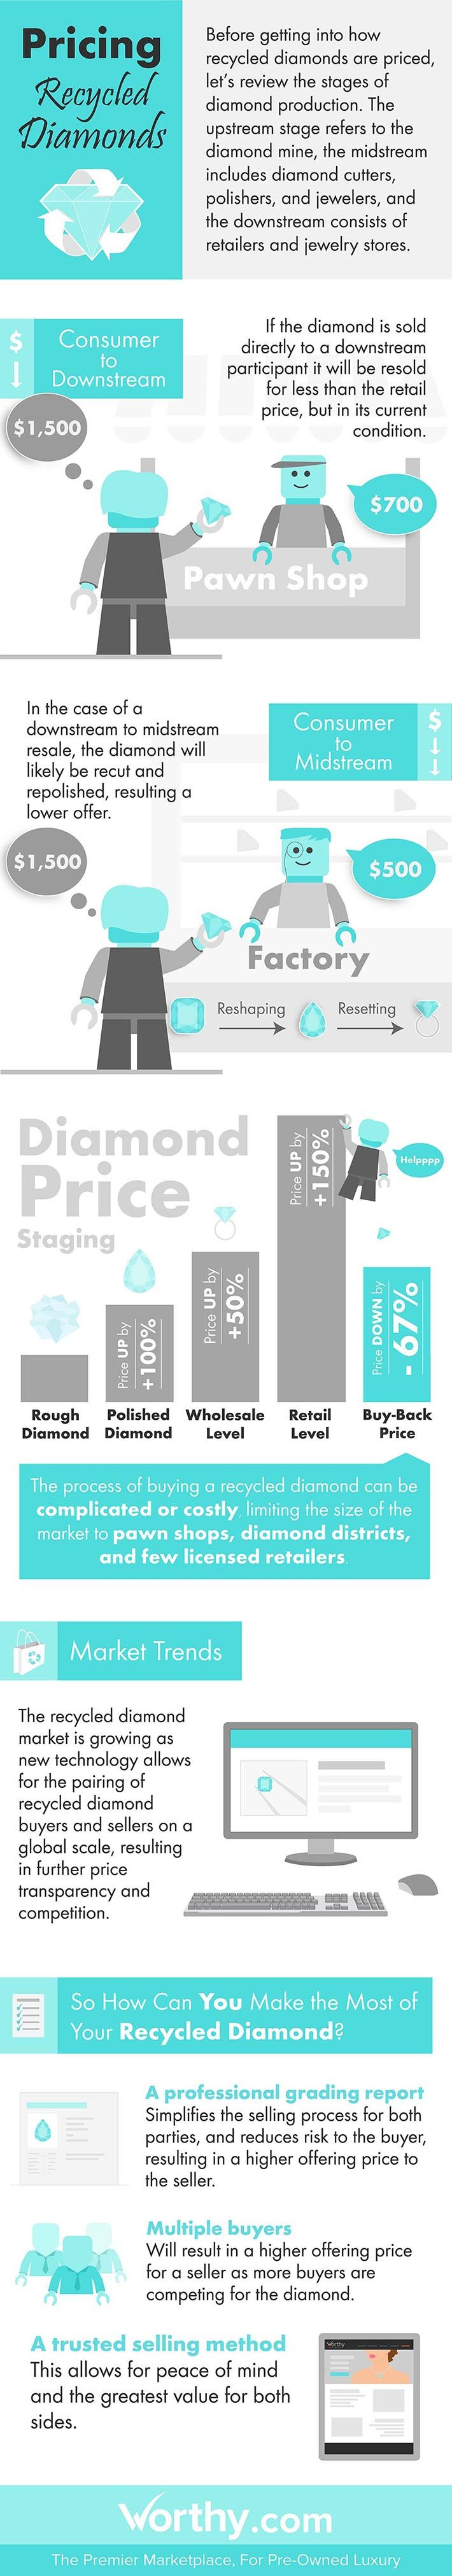 environmental degradation essay essay about our n writers in  best ideas about environmental degradation exploring diamond pricing pt 2 recycled diamonds infographic environmental degradation essay